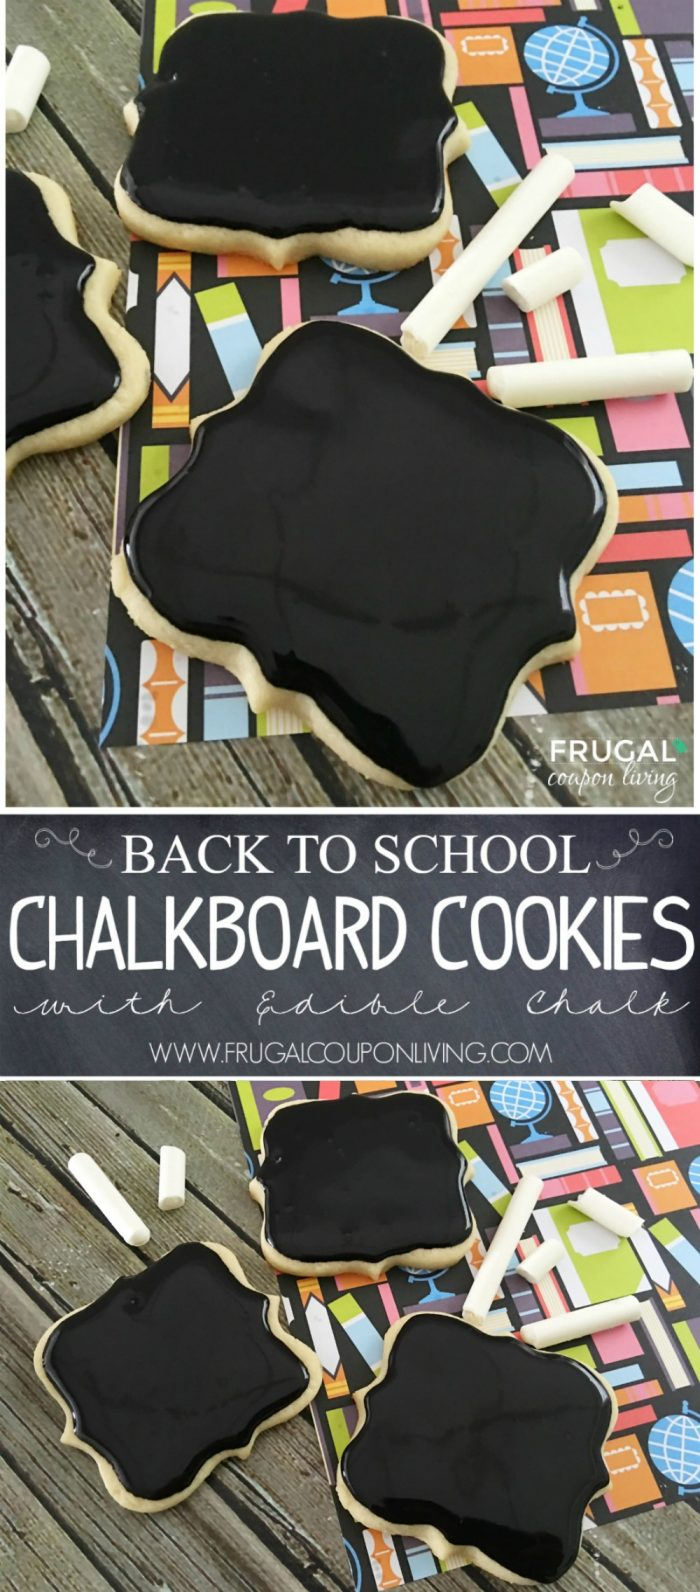 Chalkboard-cookies-frugal-coupon-living-vertical-shorter